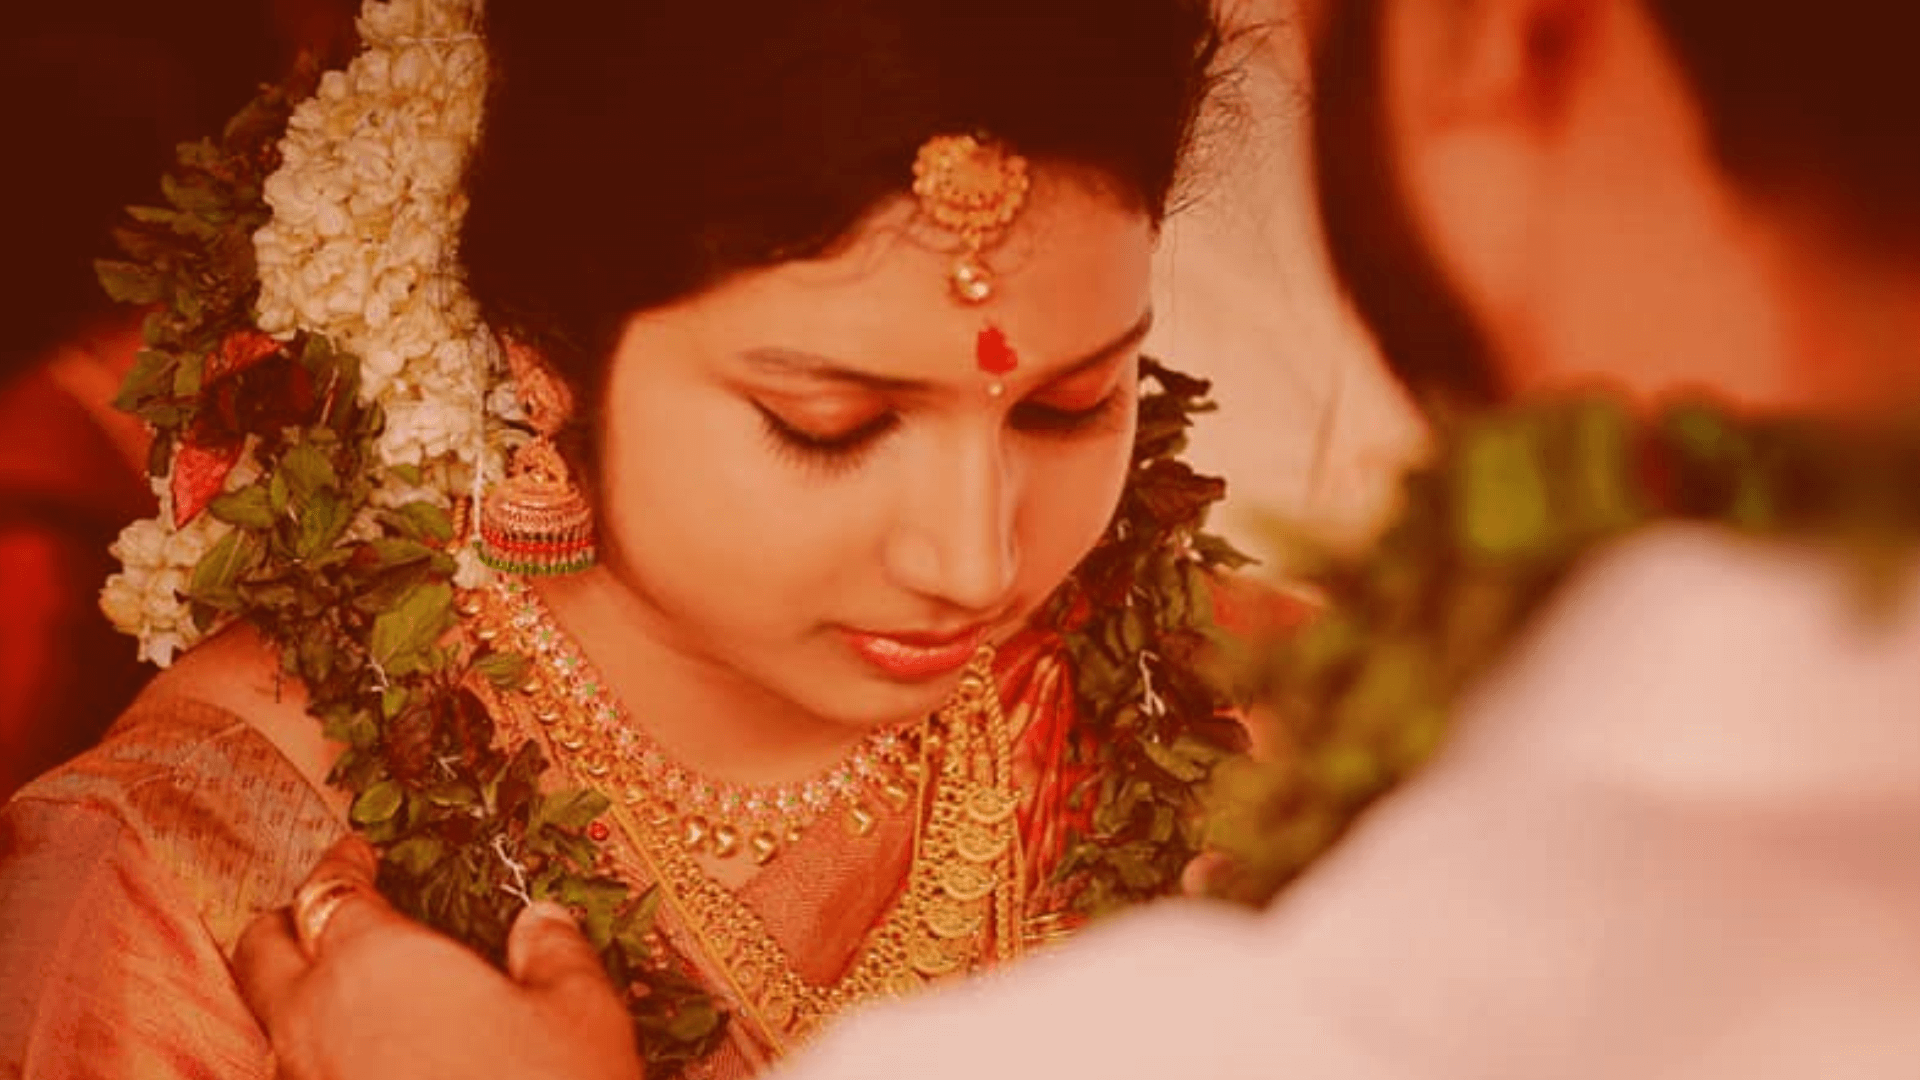 Free Kerala matrimony for Ezhava community